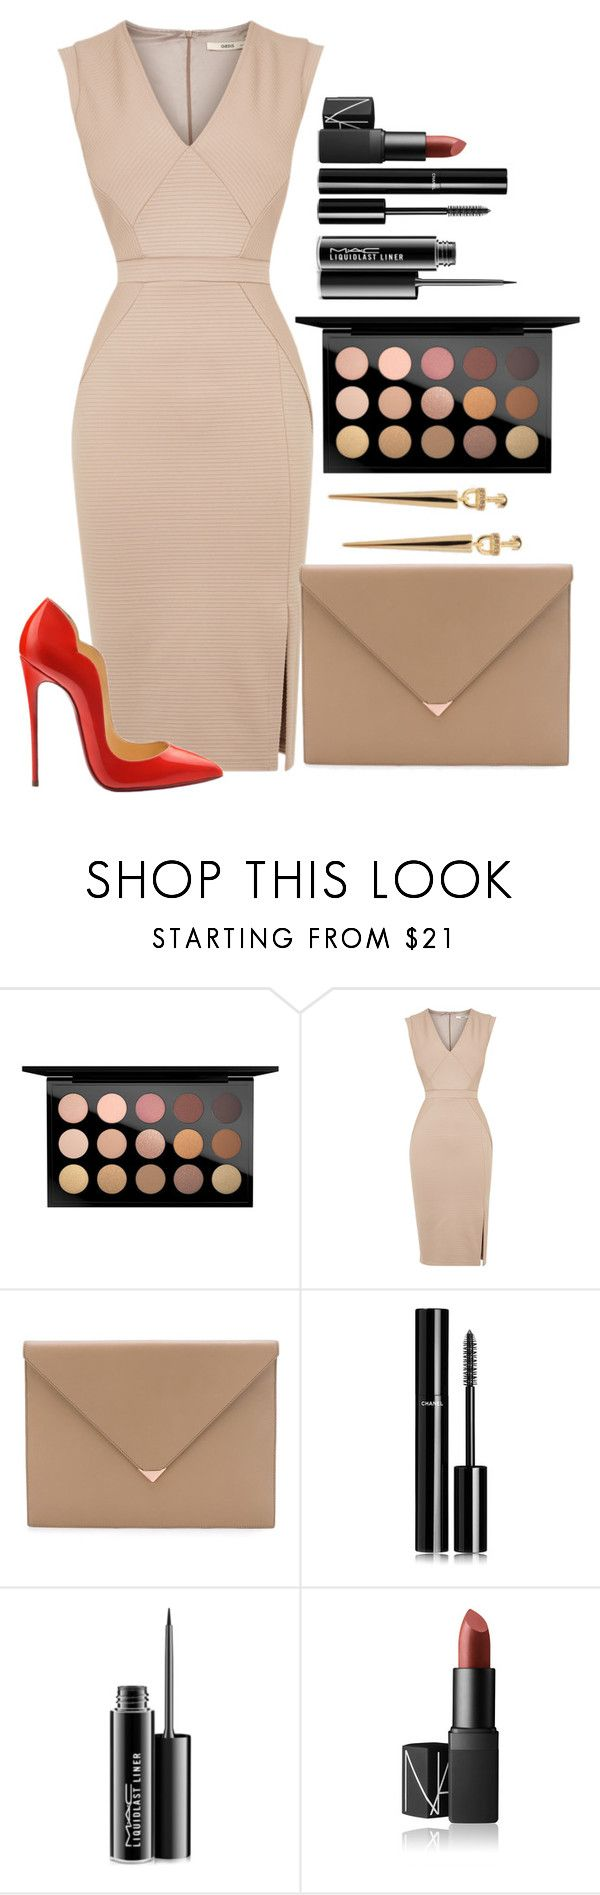 """""""Untitled #1451"""" by fabianarveloc on Polyvore featuring MAC Cosmetics, Oasis, Christian Louboutin, Alexander Wang, Chanel, NARS Cosmetics and Paige Novick"""